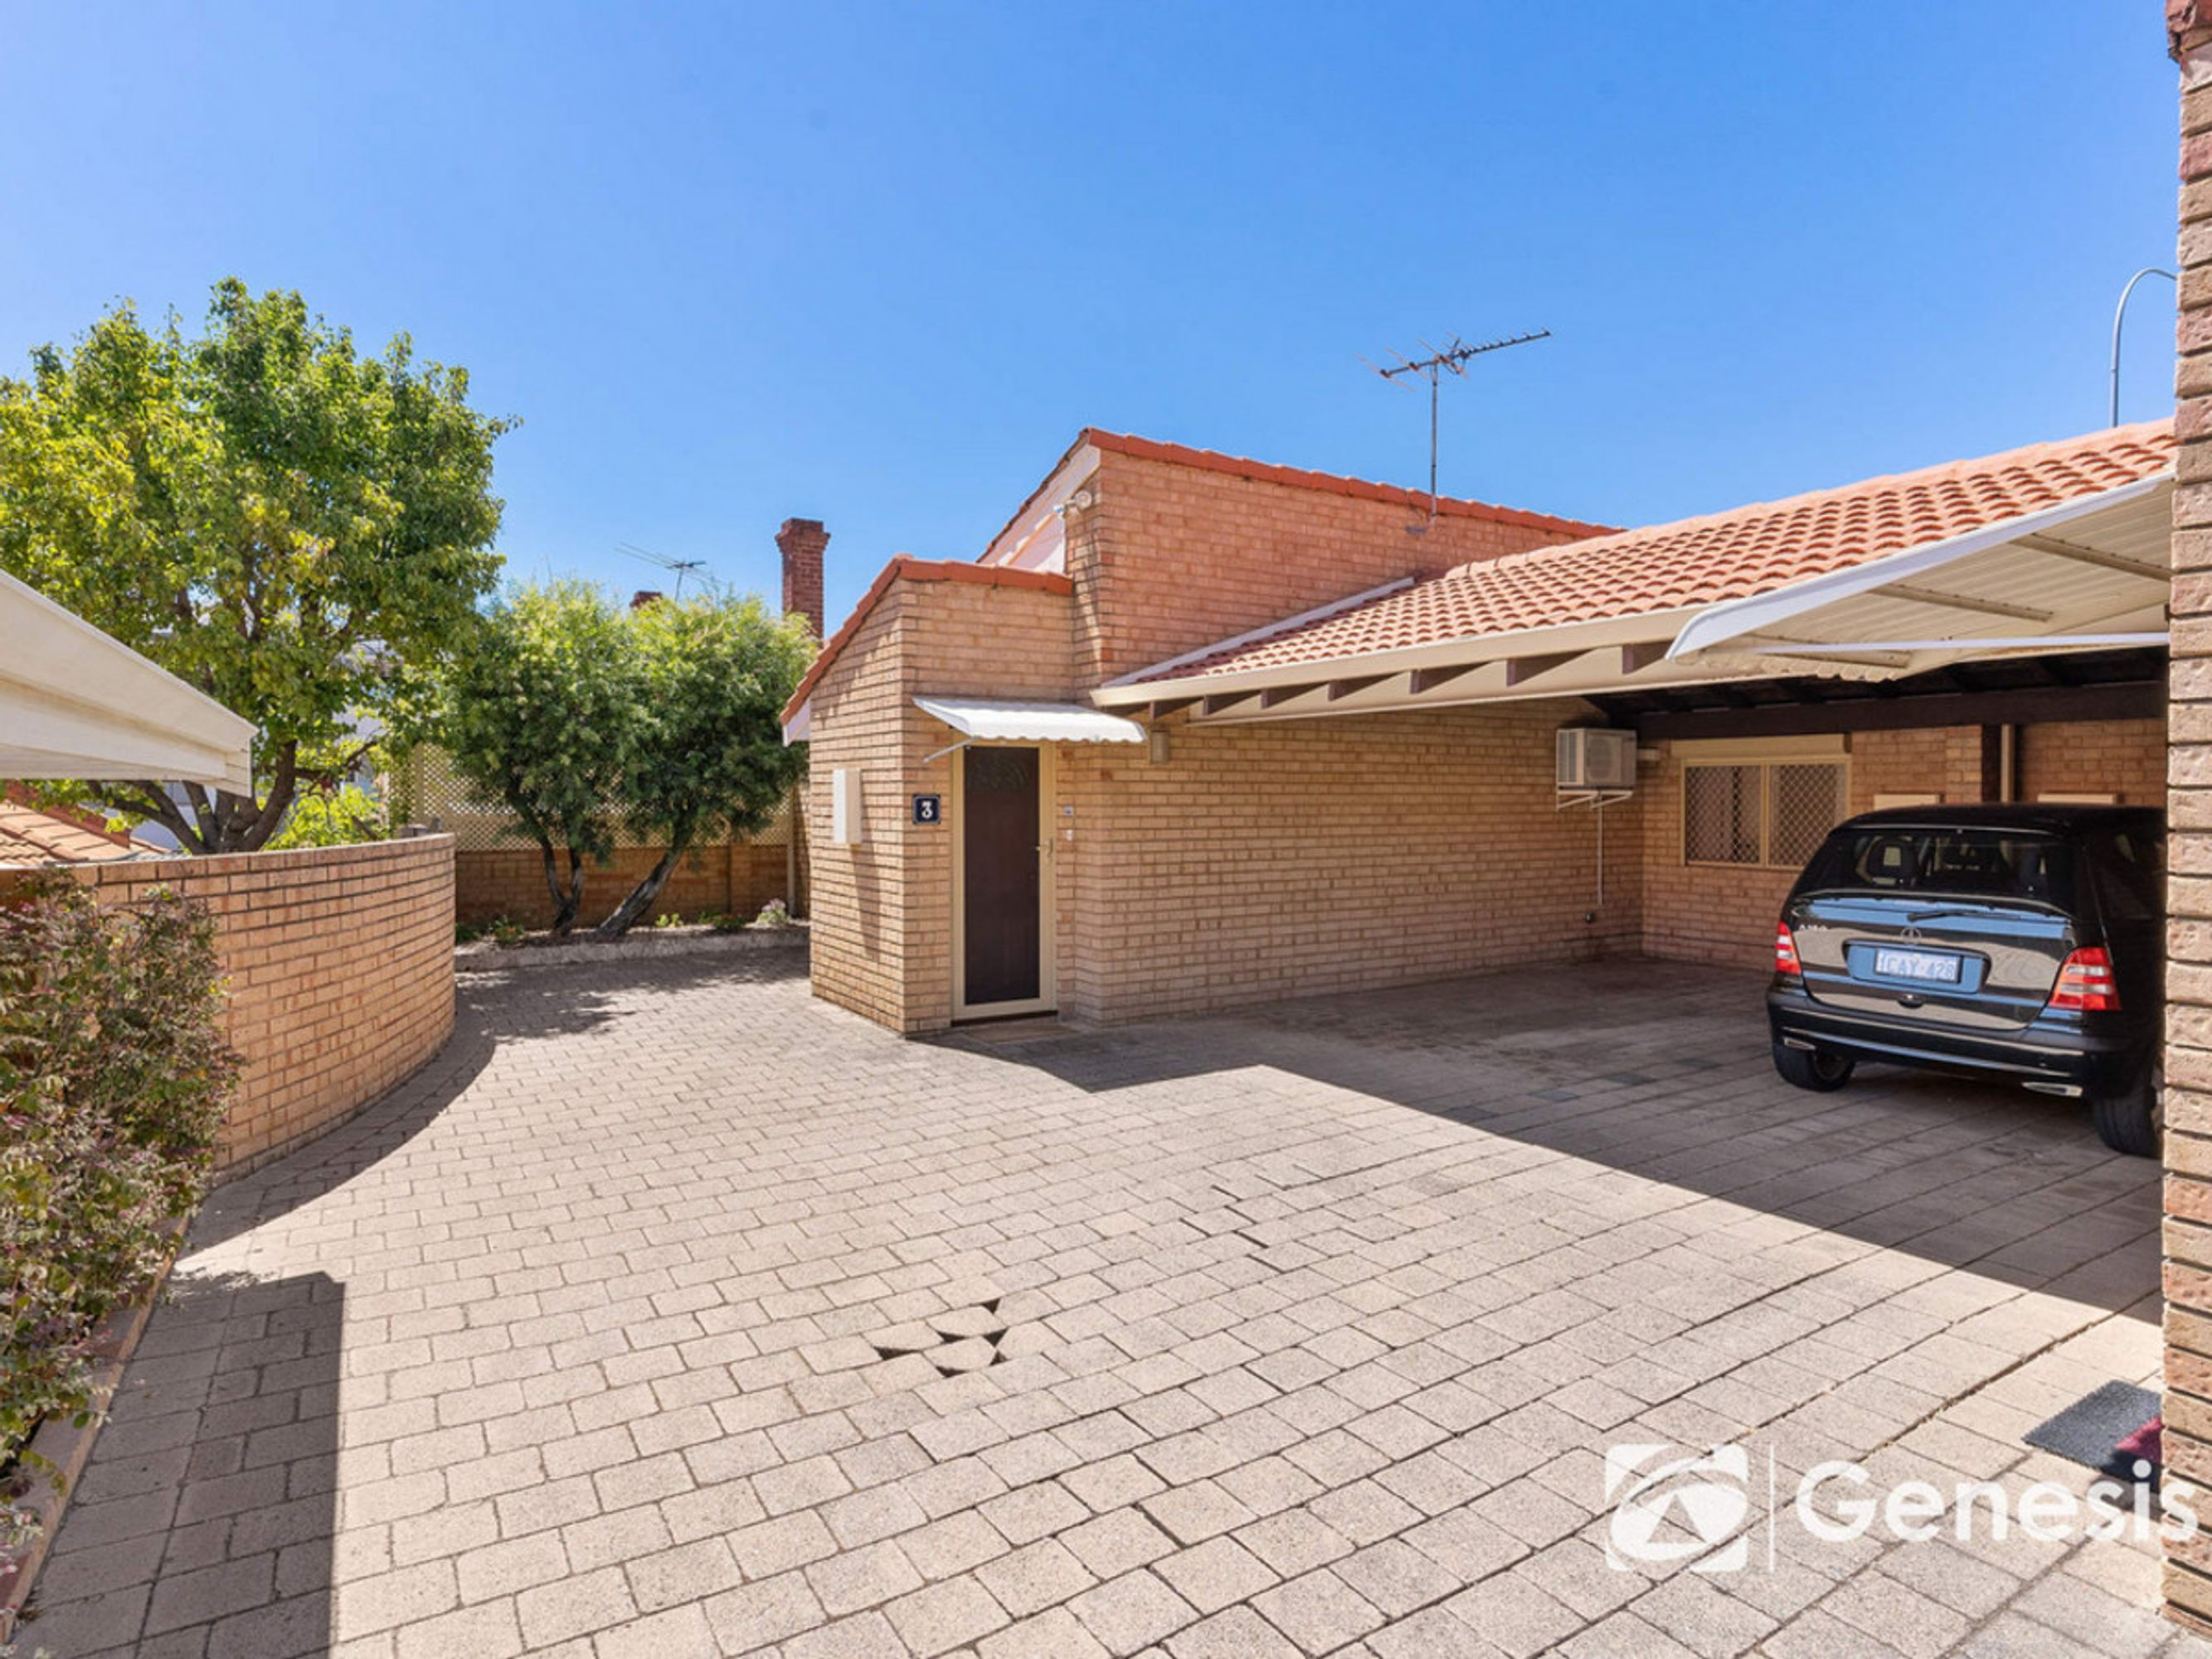 3/22 Little Walcott, North Perth, WA 6006